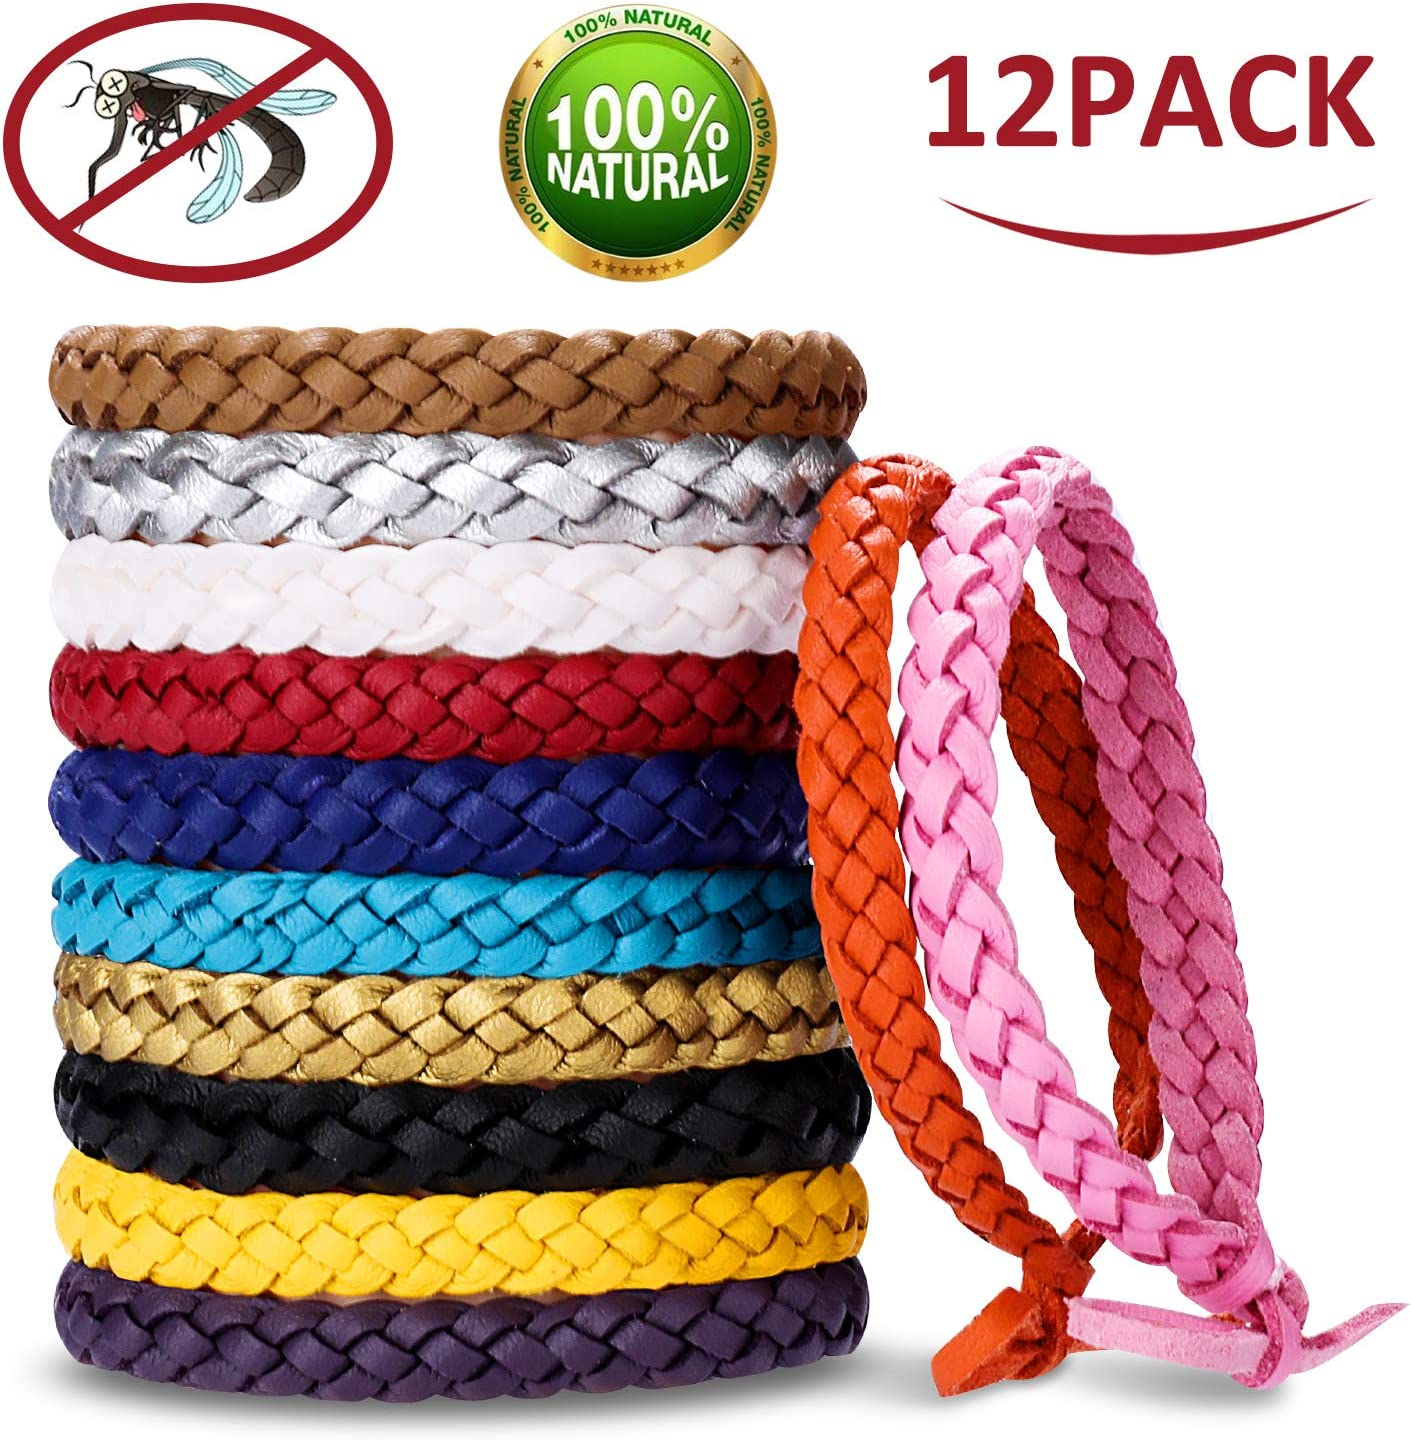 Safe Pest Control for Kids and Adults Long-Lasting Waterproof Anti Insects,Bugs and Midge Mosquito Repellent Bracelet LYUNIT 12 Packs Mosquito Bands 100/% Natural Deet Free Insect Repellent Bands